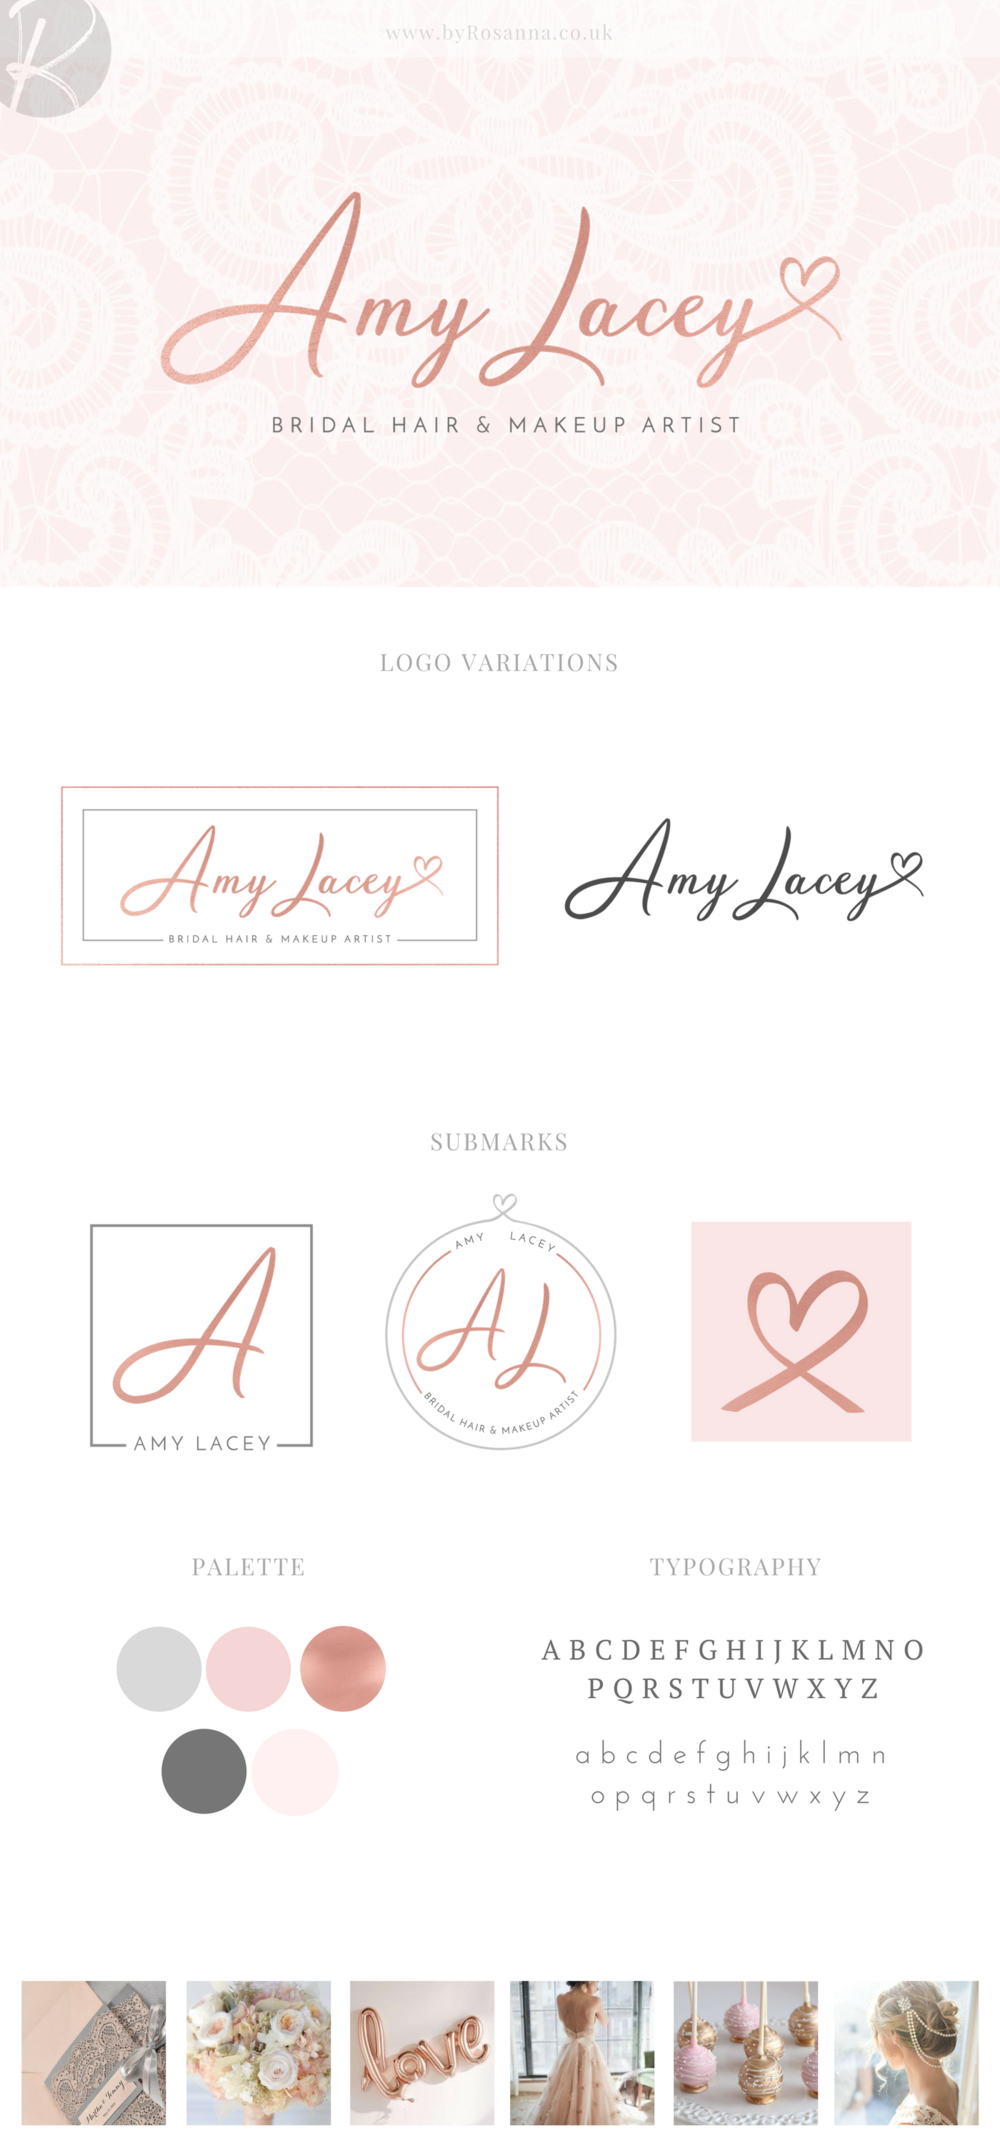 Amy Lacey Brand Concept Board